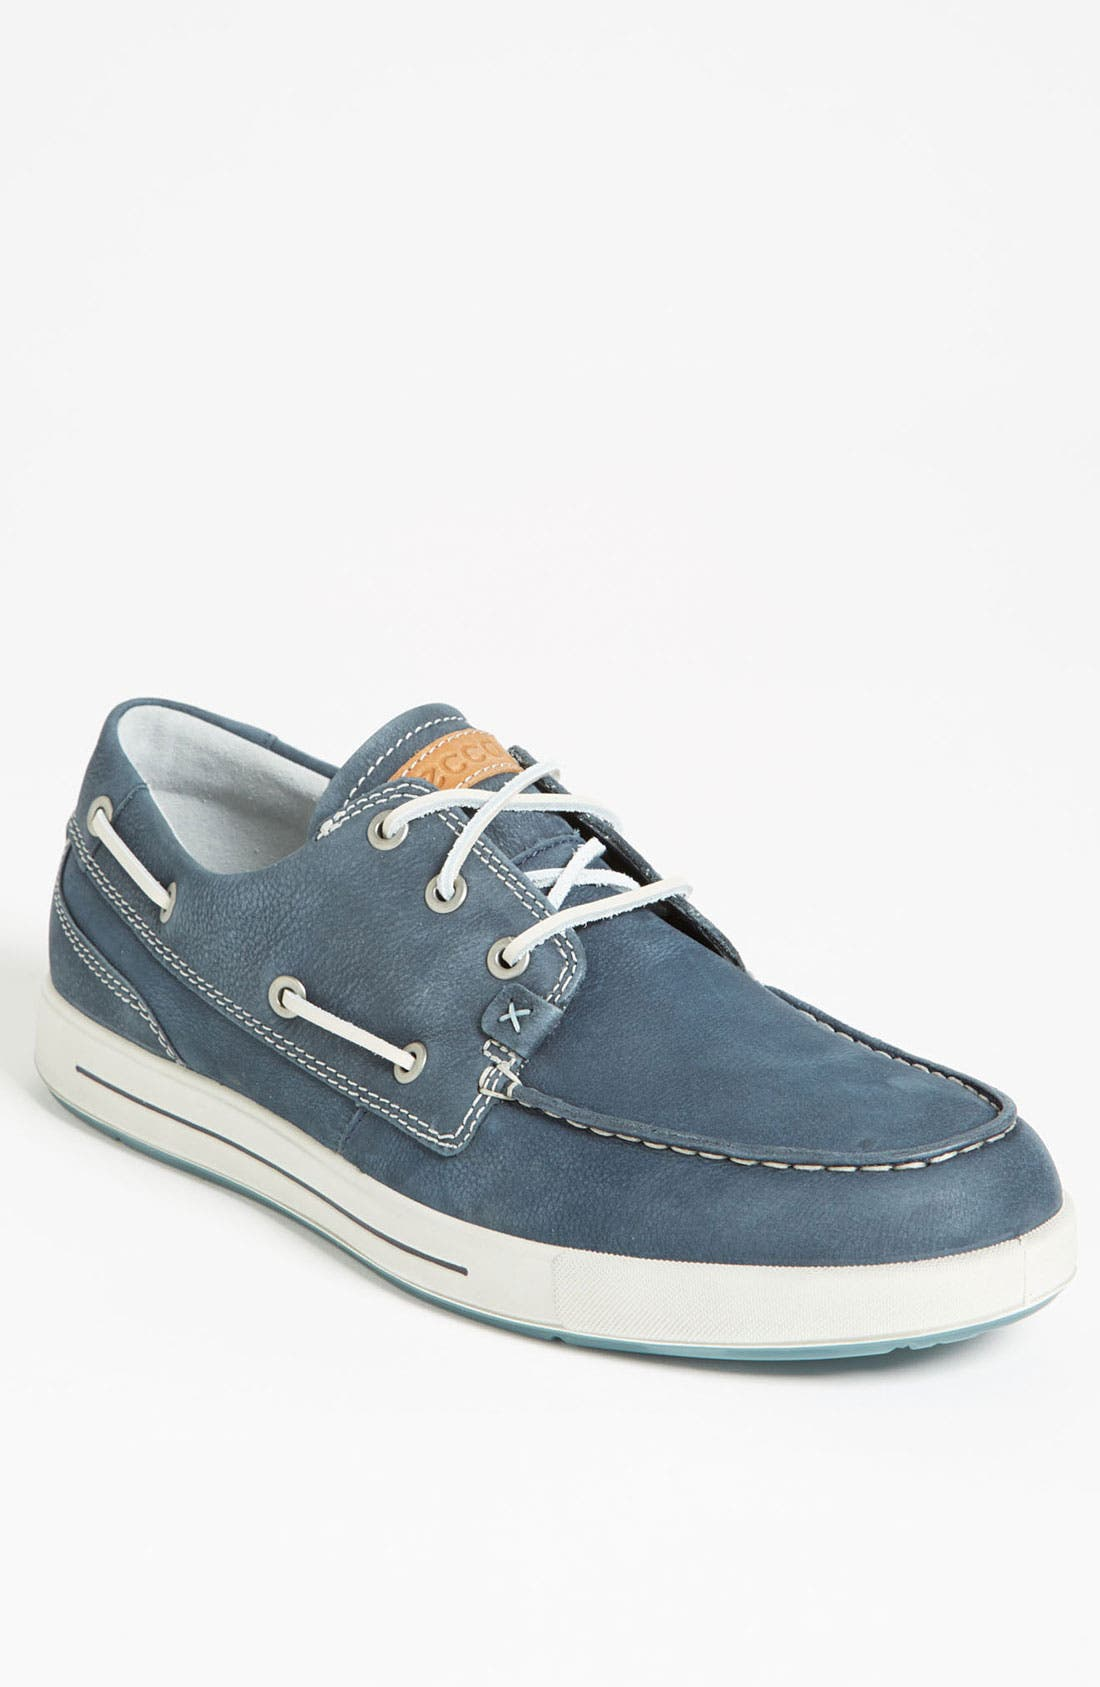 Alternate Image 1 Selected - ECCO 'Androw' Boat Shoe (Men)